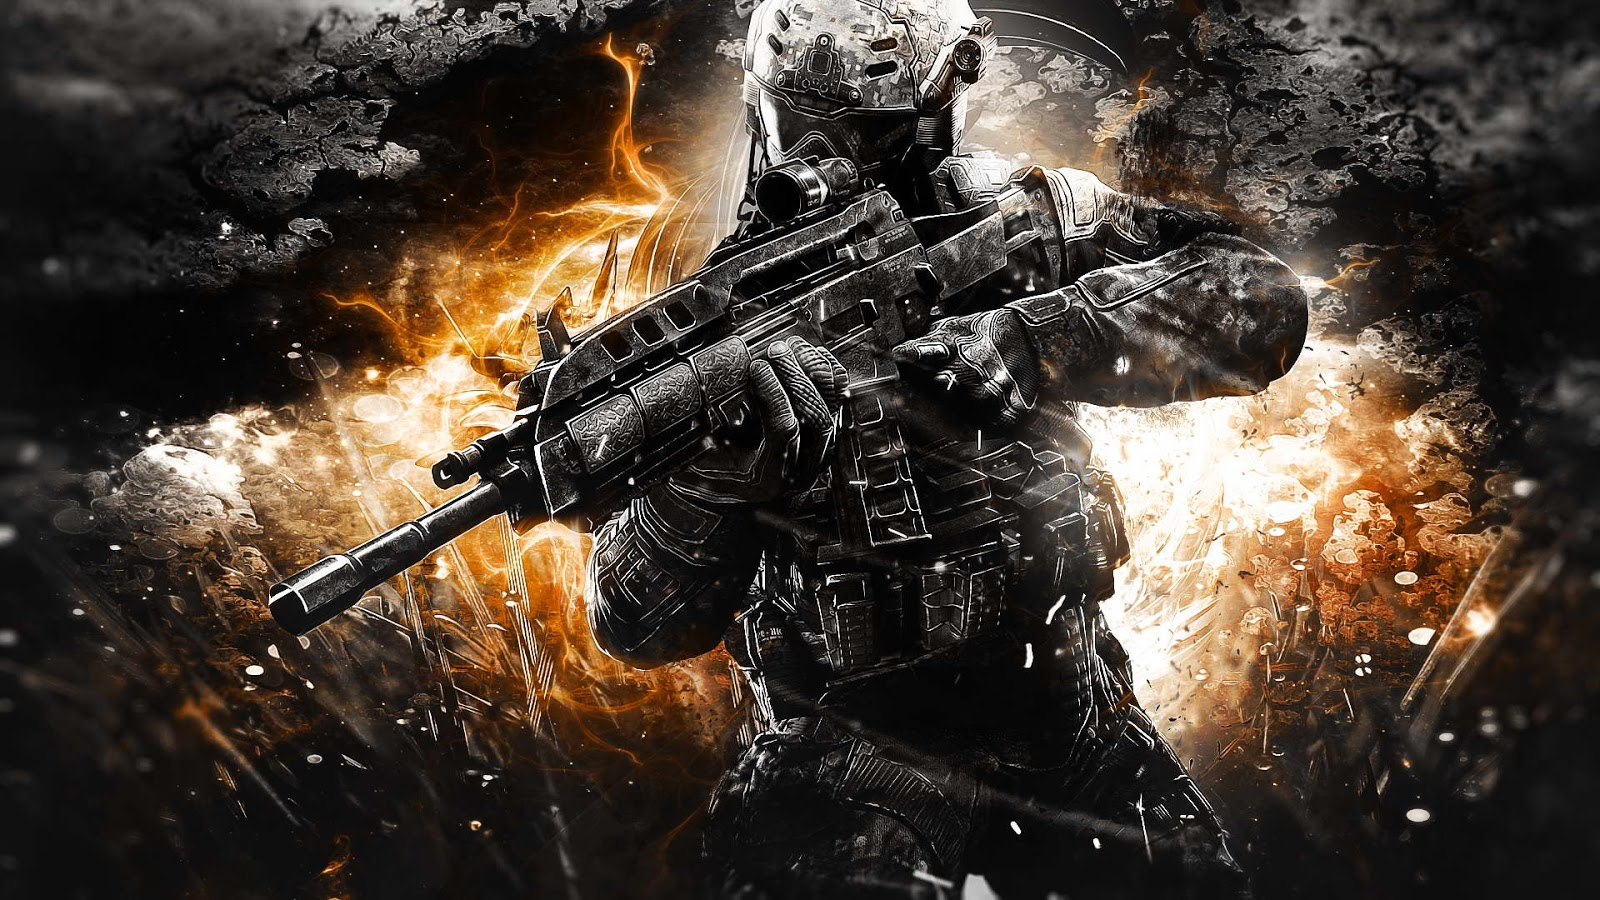 bo2 zombies origins wallpaper cod bo2 guns cod bo2 wallpaper please 1600x900